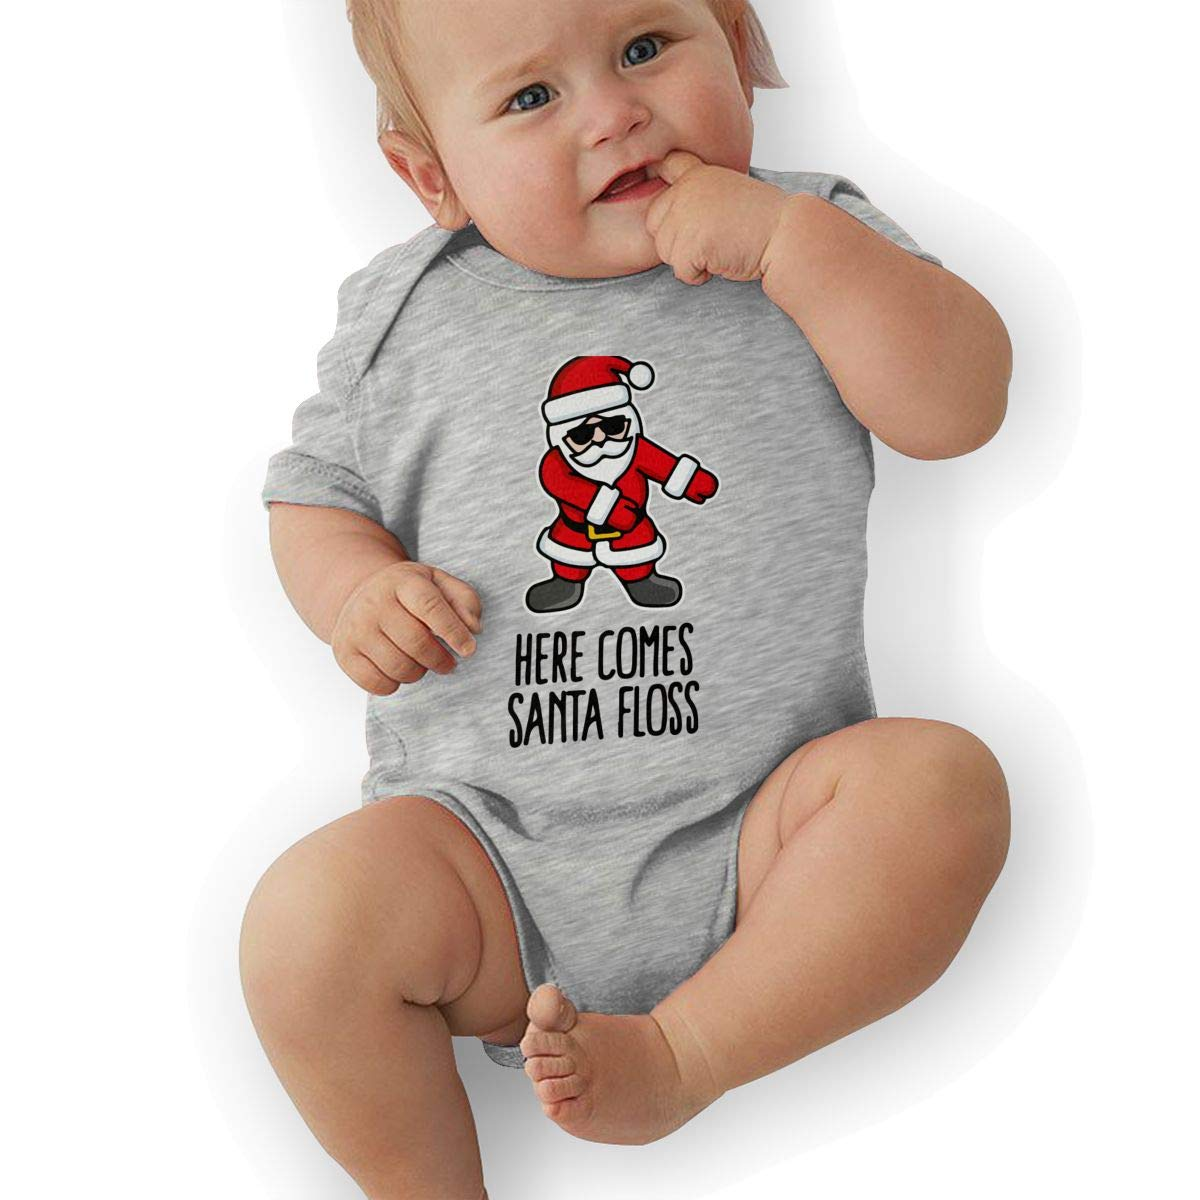 BONLOR Santa Floss Dance Baby Rompers One Piece Jumpsuits Summer Outfits Clothes Gray